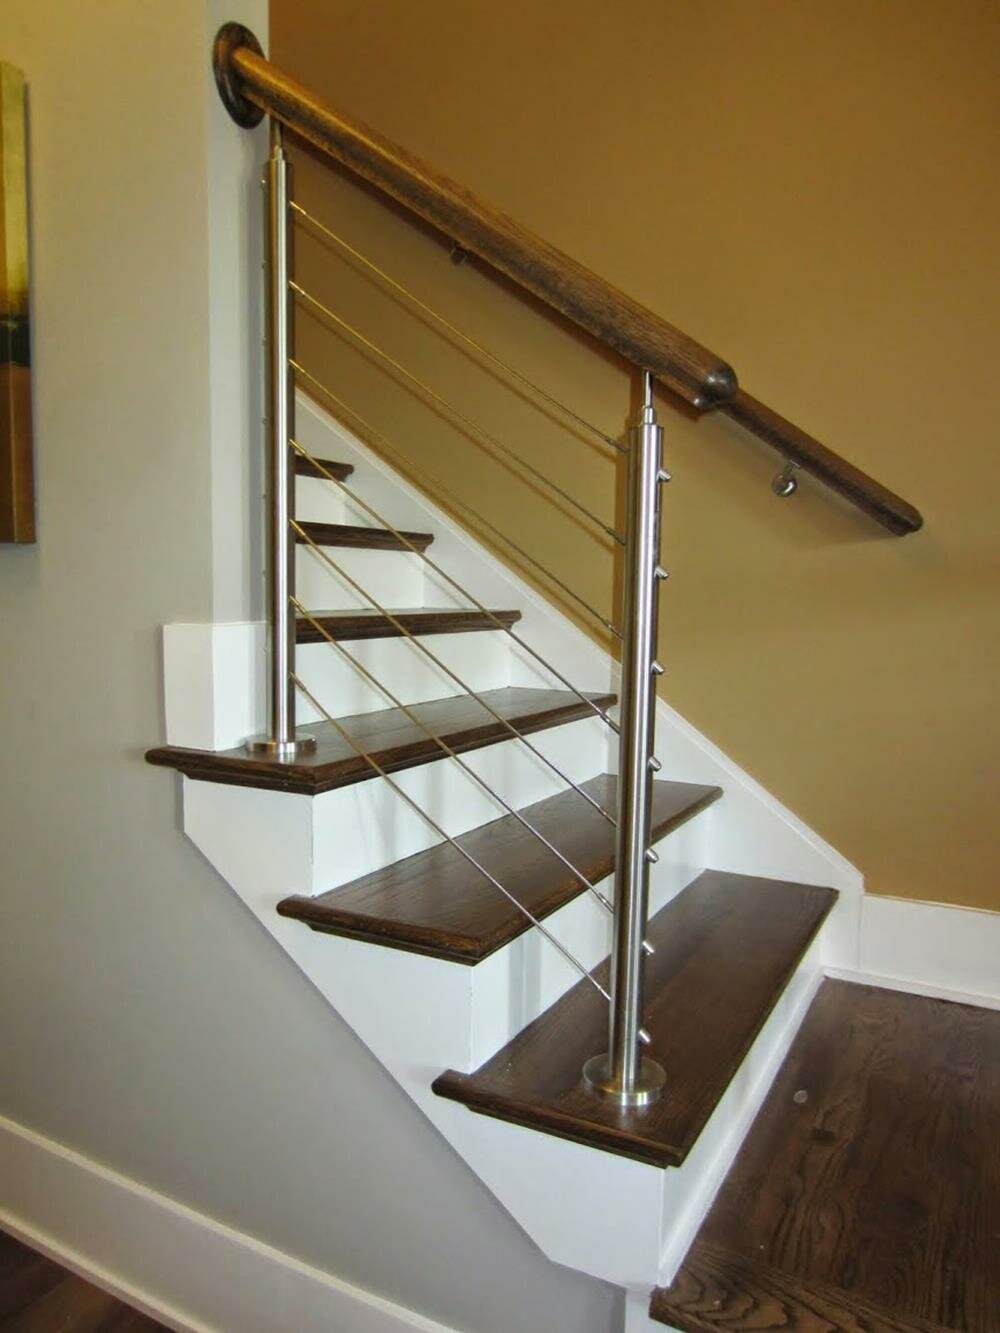 Wood Handrail Staircase Beech Banister with Stair Railing Holder Kits Home Decor